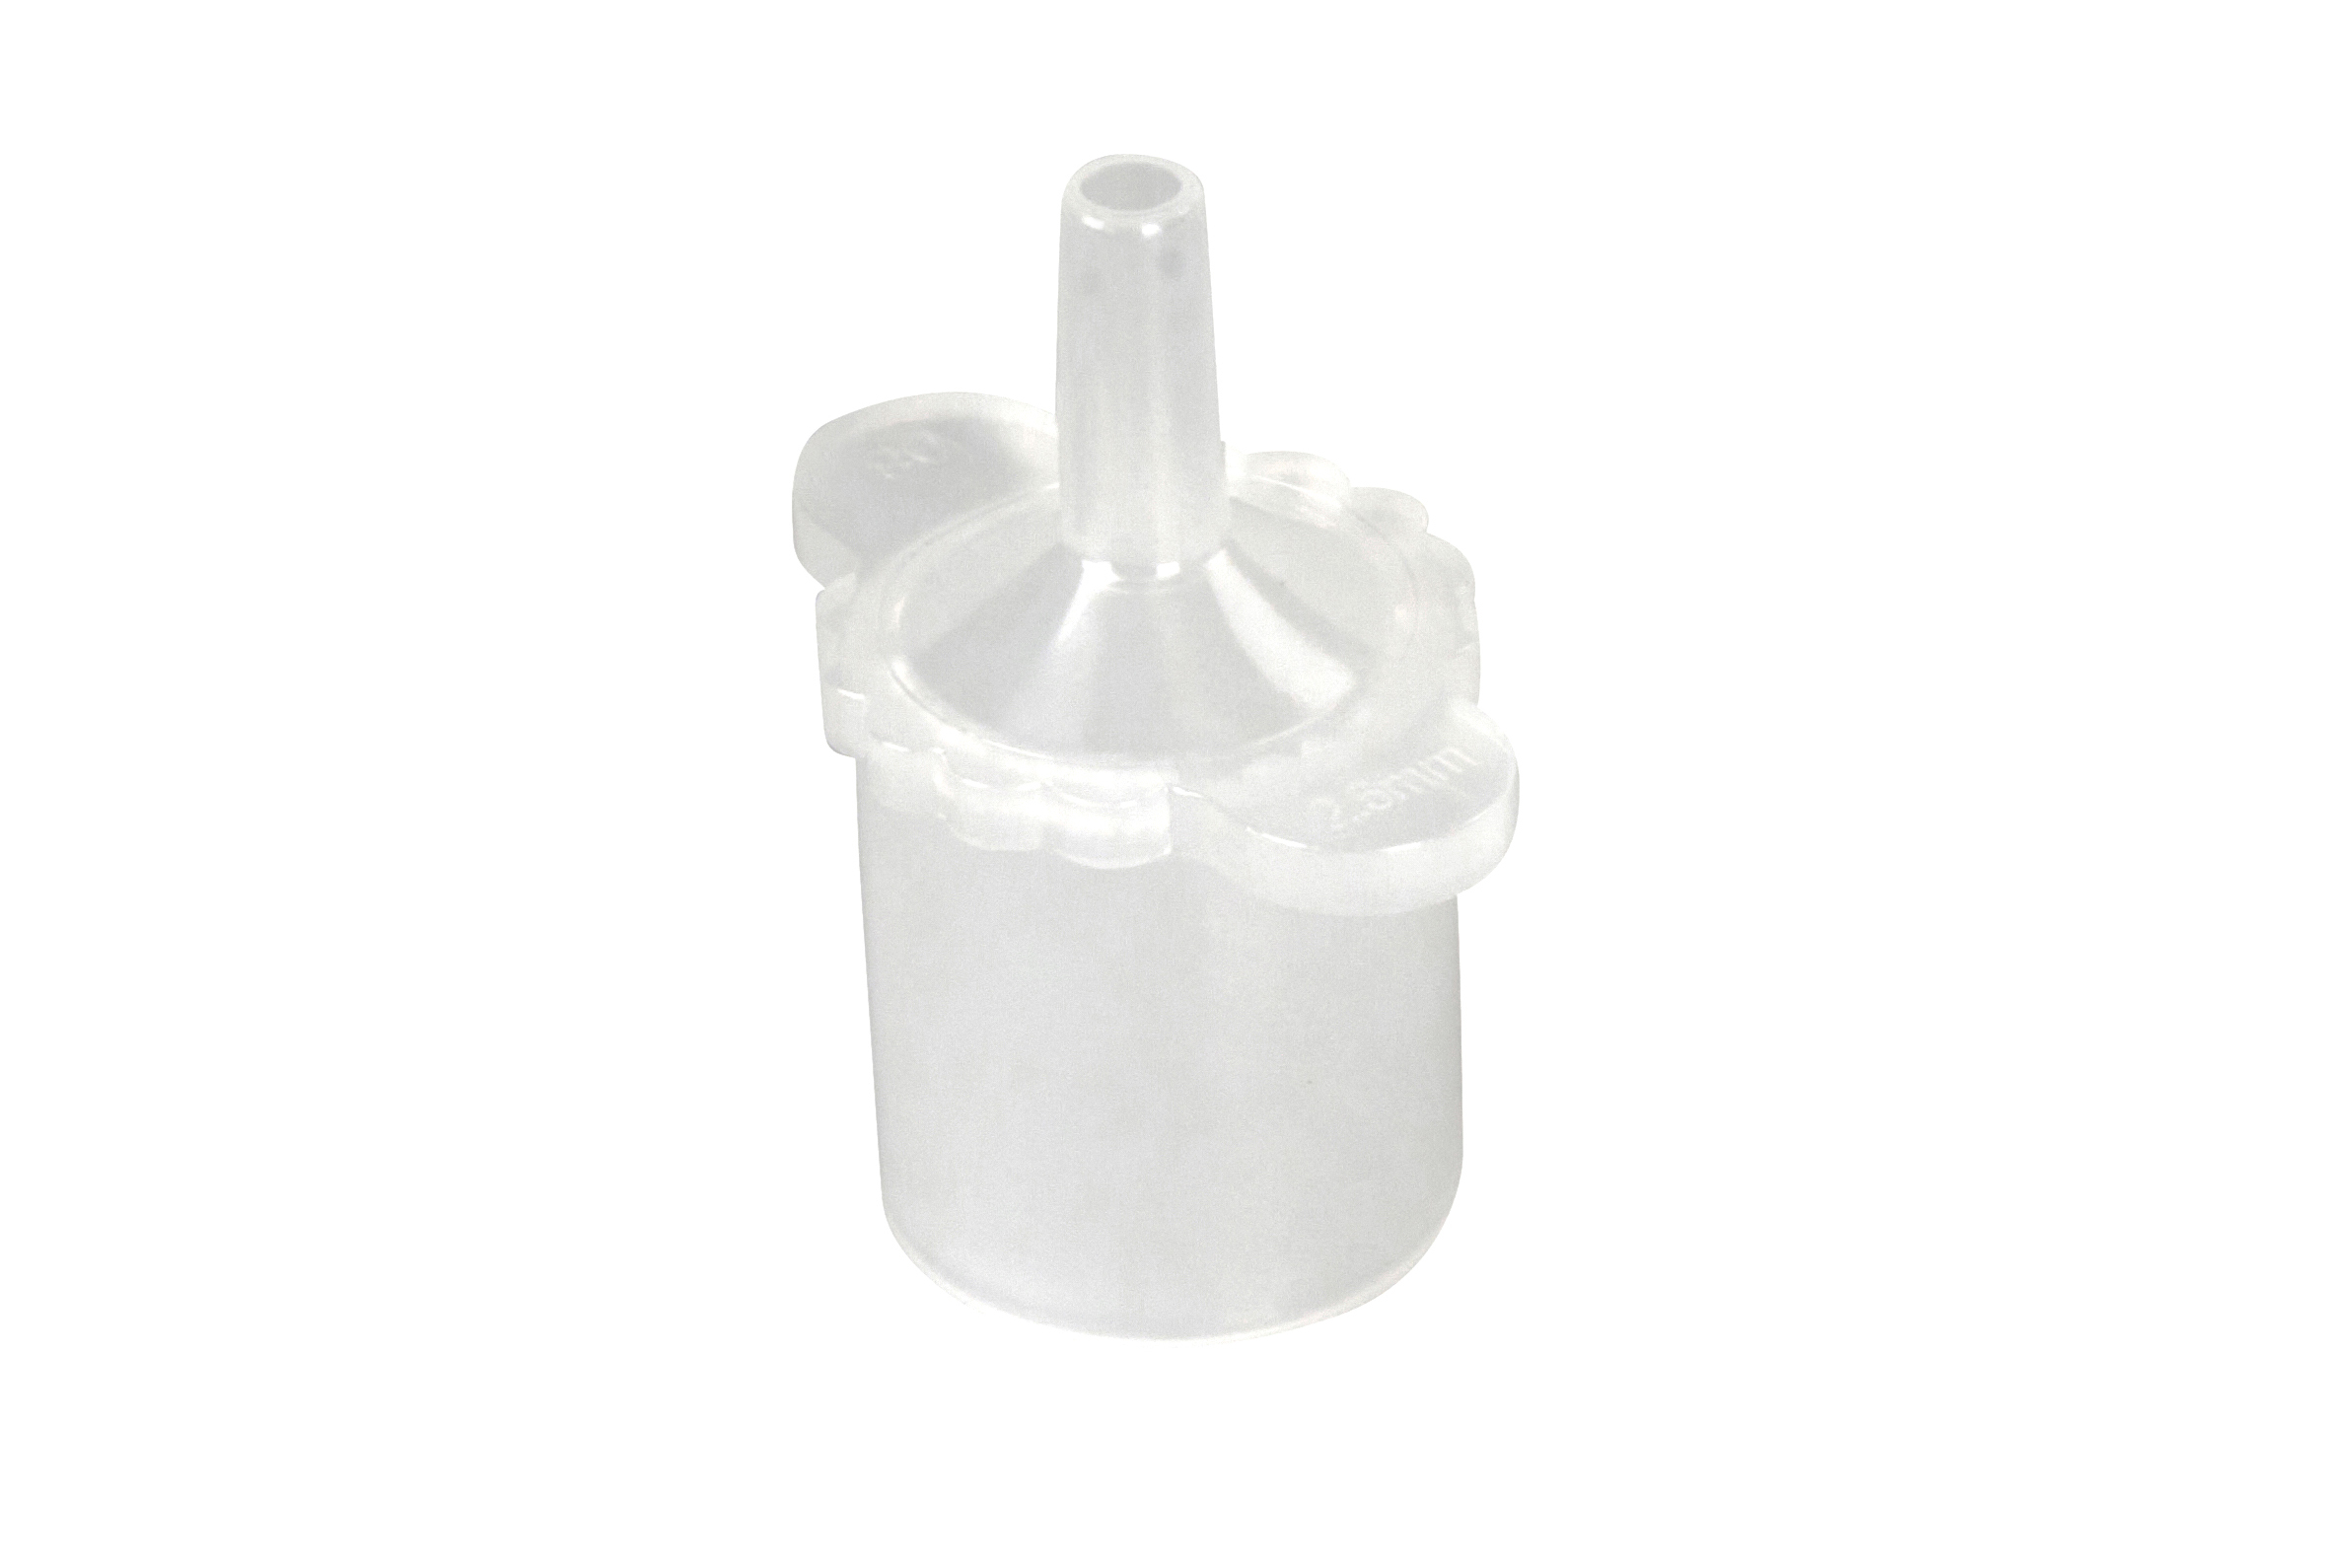 KRUUSE Connector for Endotracheal Tube 2.5 mm, 5/pk